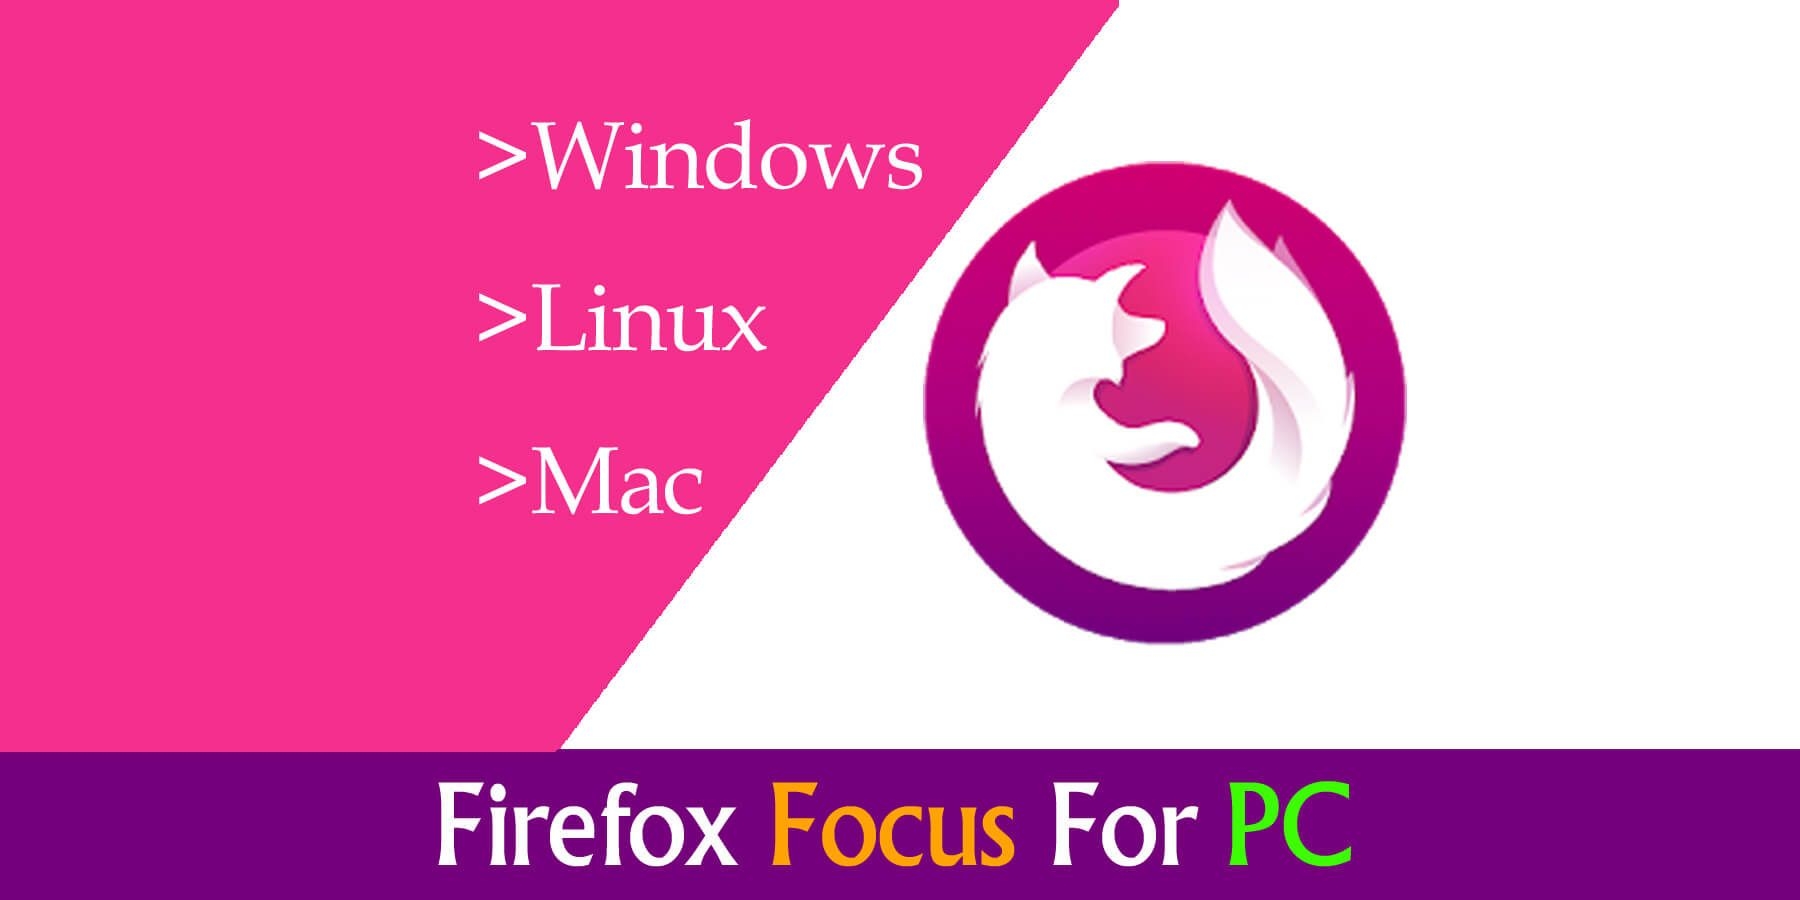 Firefox Focus For PC Windows 10 - Free Download | SoftzForPC